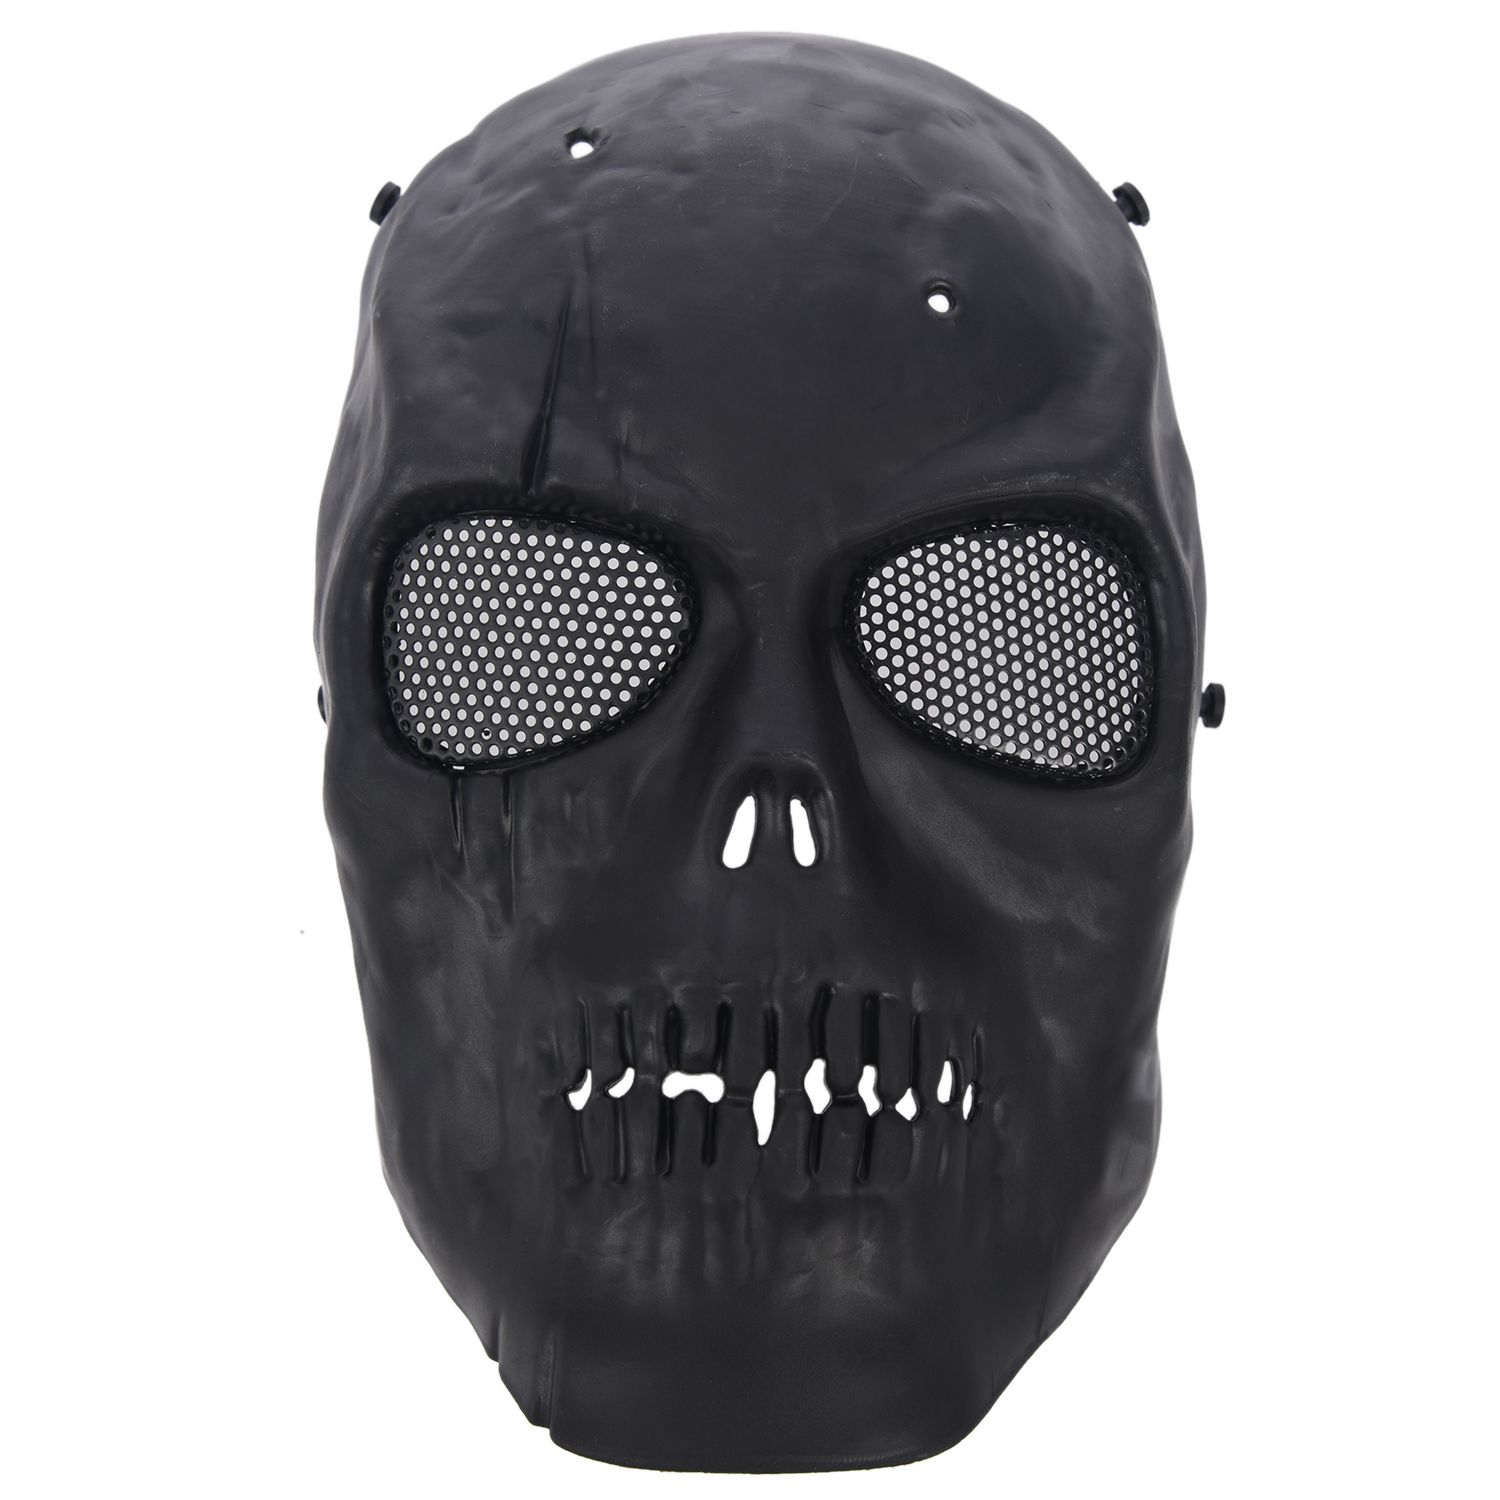 Airsoft Mask Skull Full Protective Mask  - Black